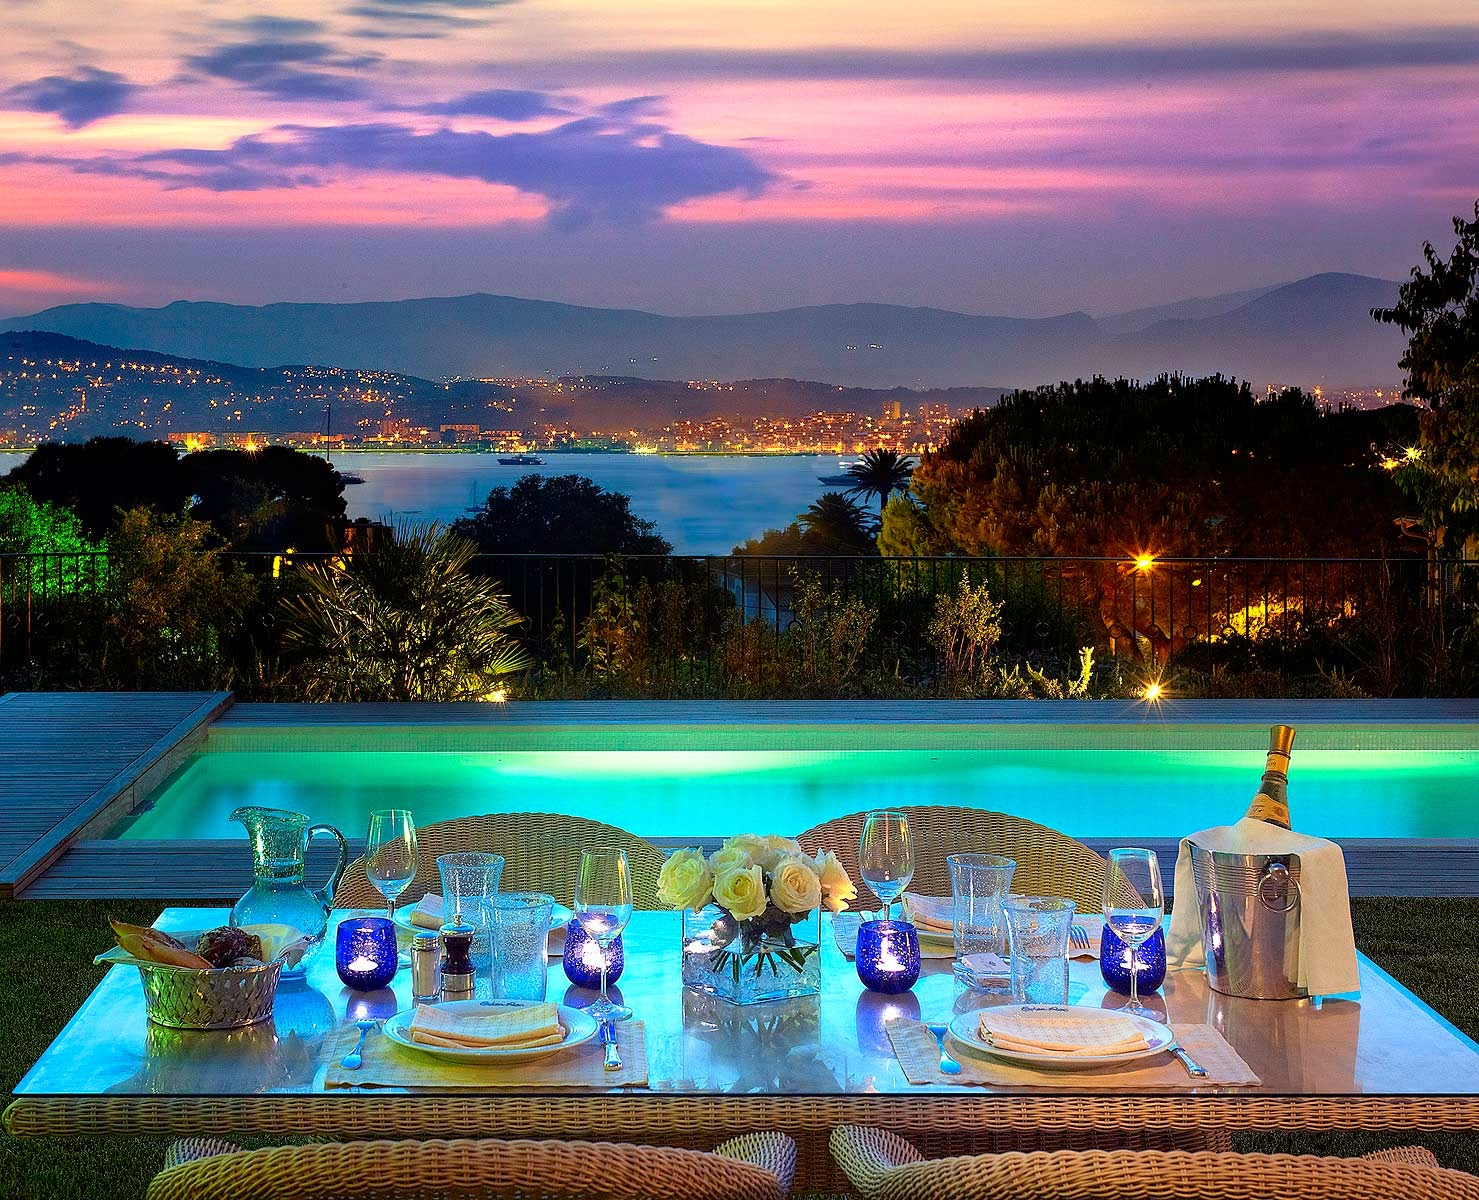 Passion For Luxury : The best hotels 2014 - Europe - Turkey